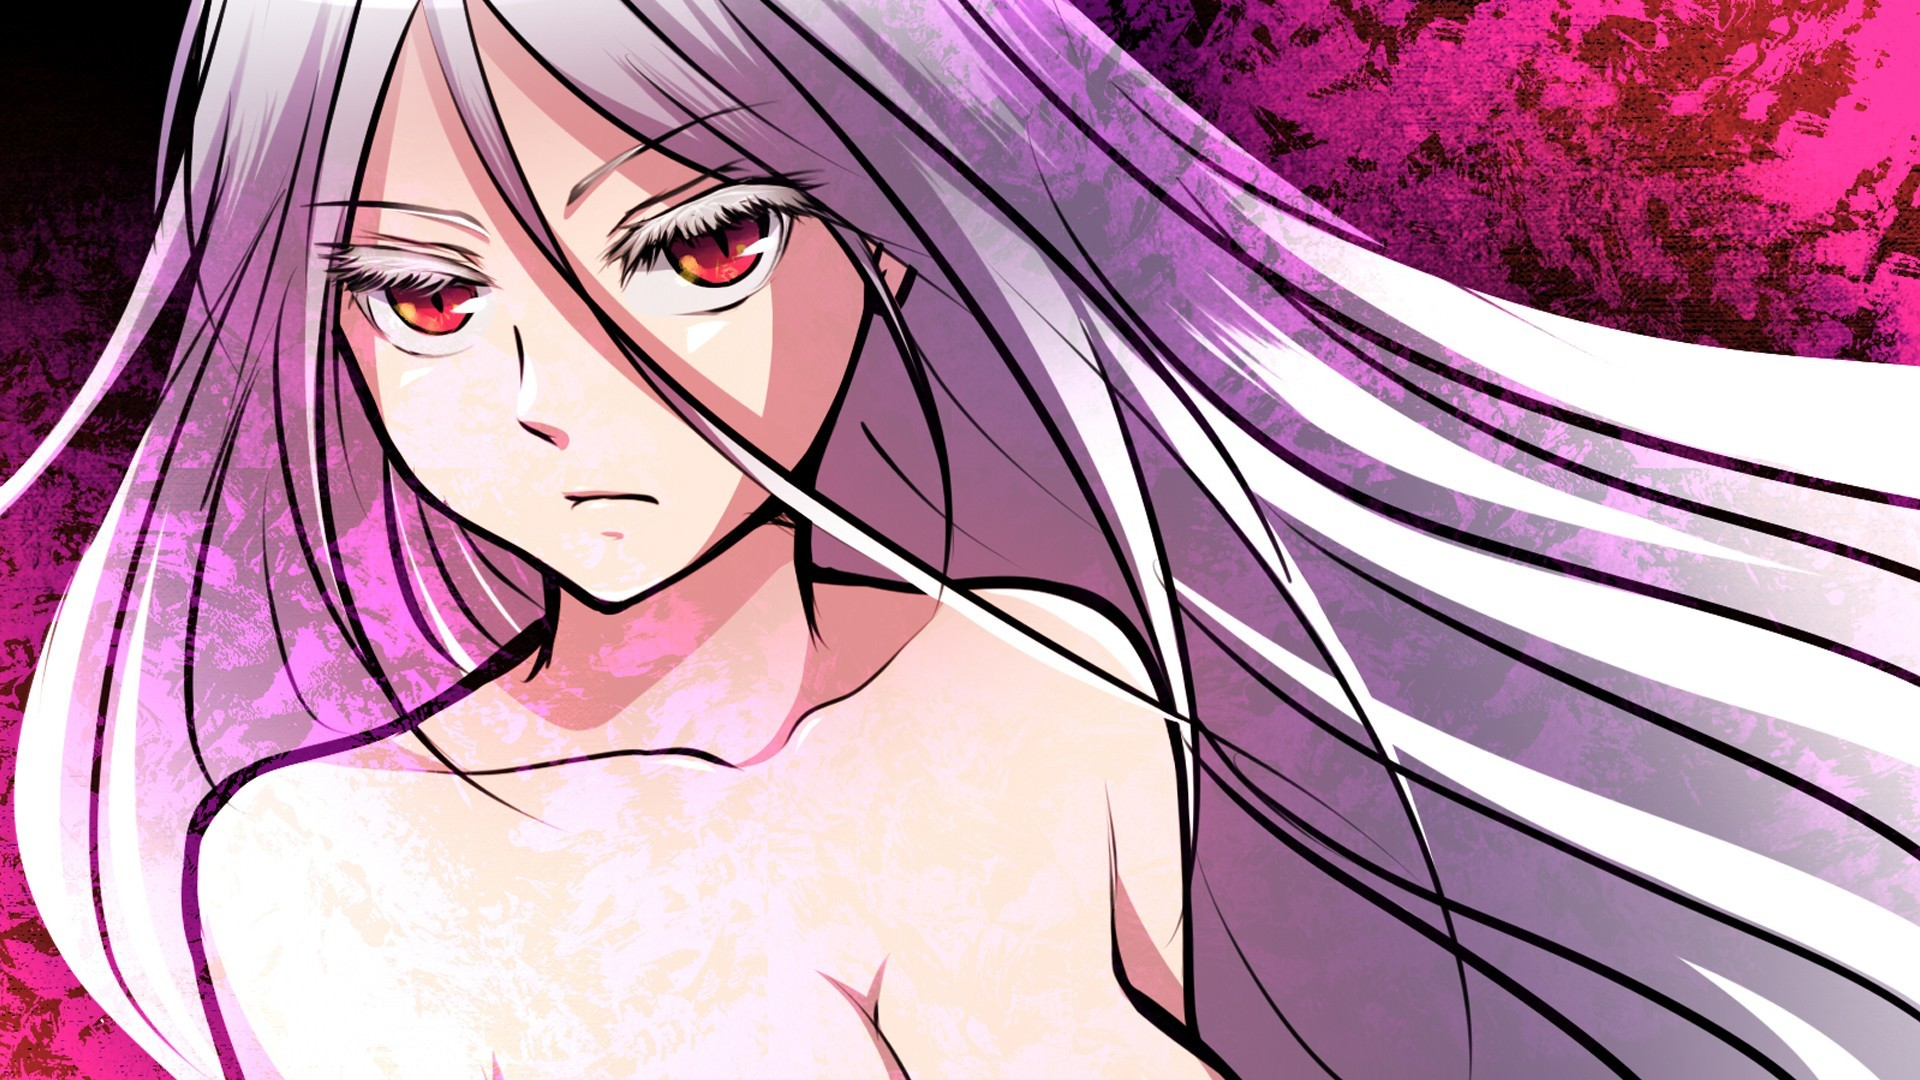 1920x1080 Deadman Wonderland Wallpaper  Deadman Wonderland Anime